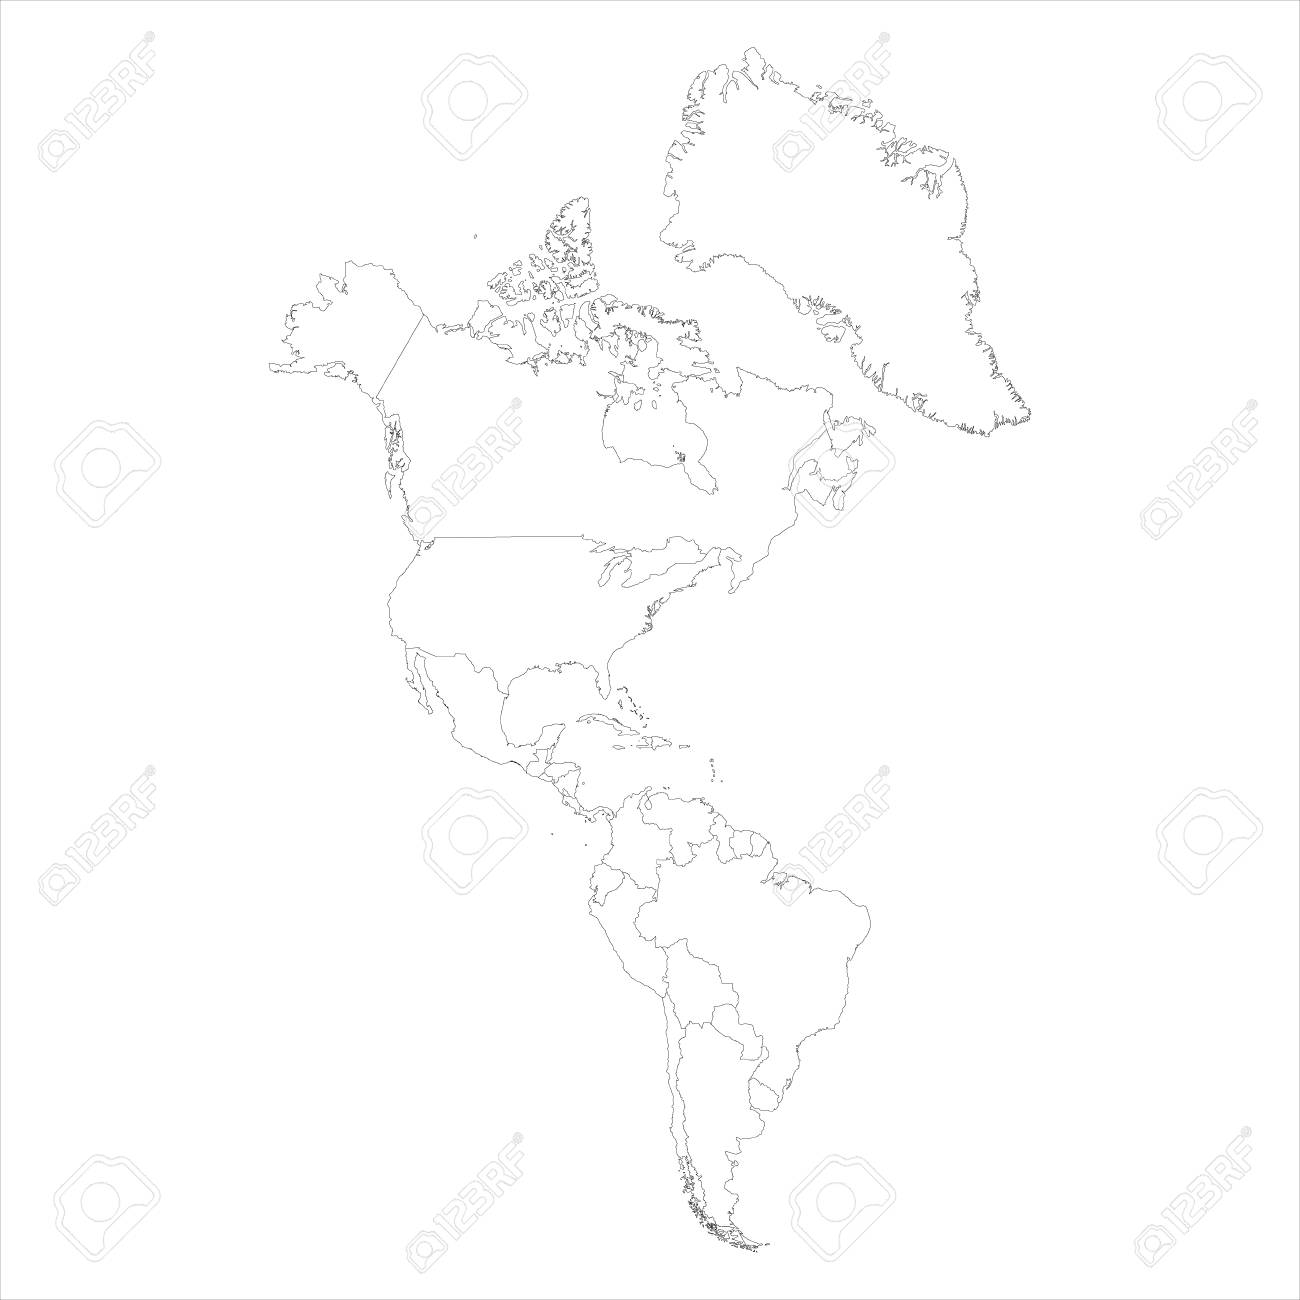 Raster illustration map of South and North America isolated on.. on map of america map, drawing mexico map, united states of america map, drawing canada map, drawing france map,